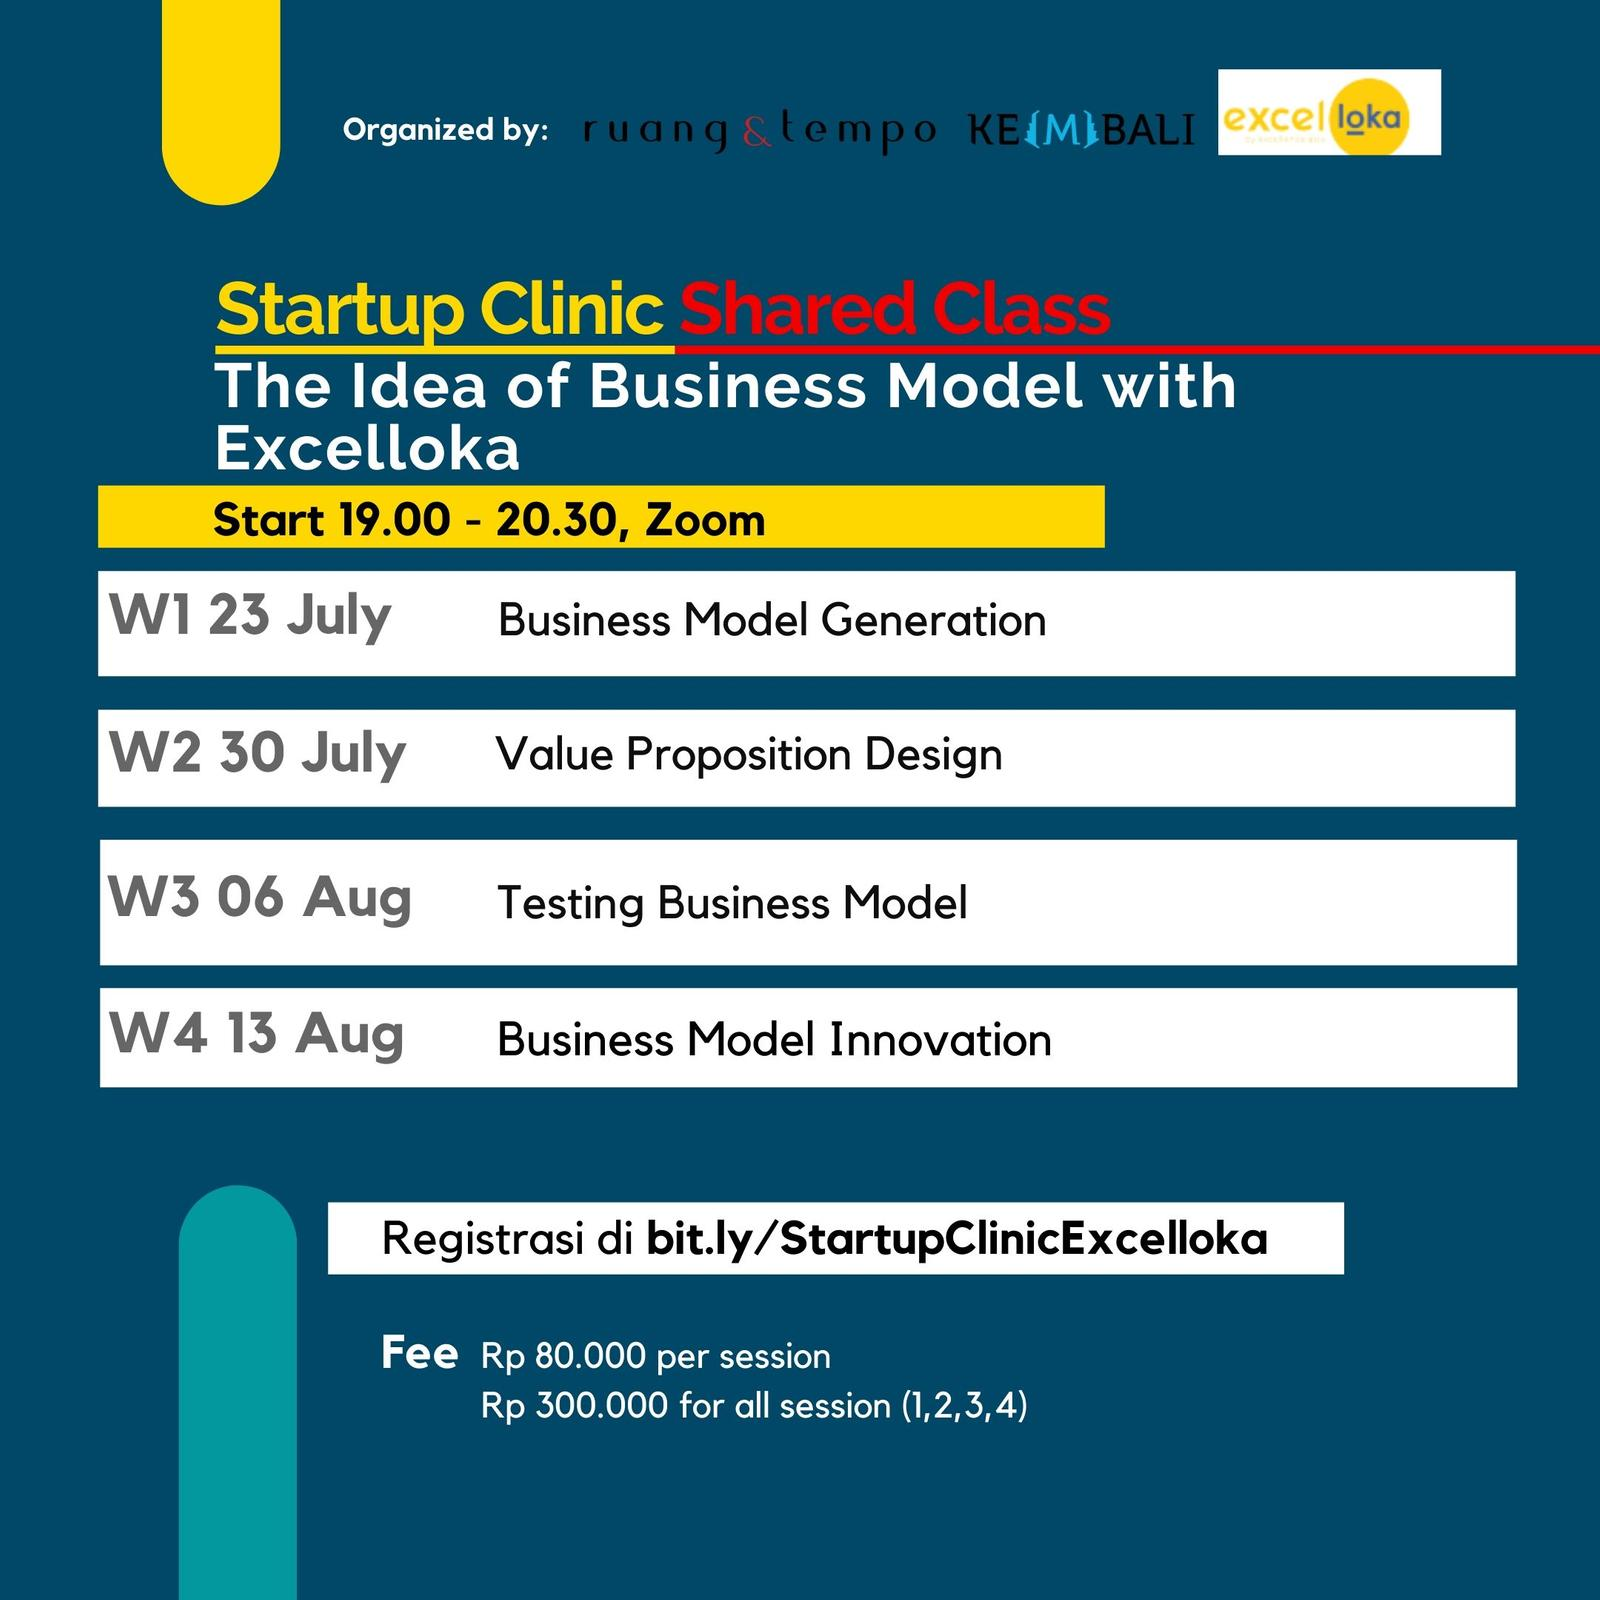 Startup Clinic: The Idea of Business Model with Excelloka